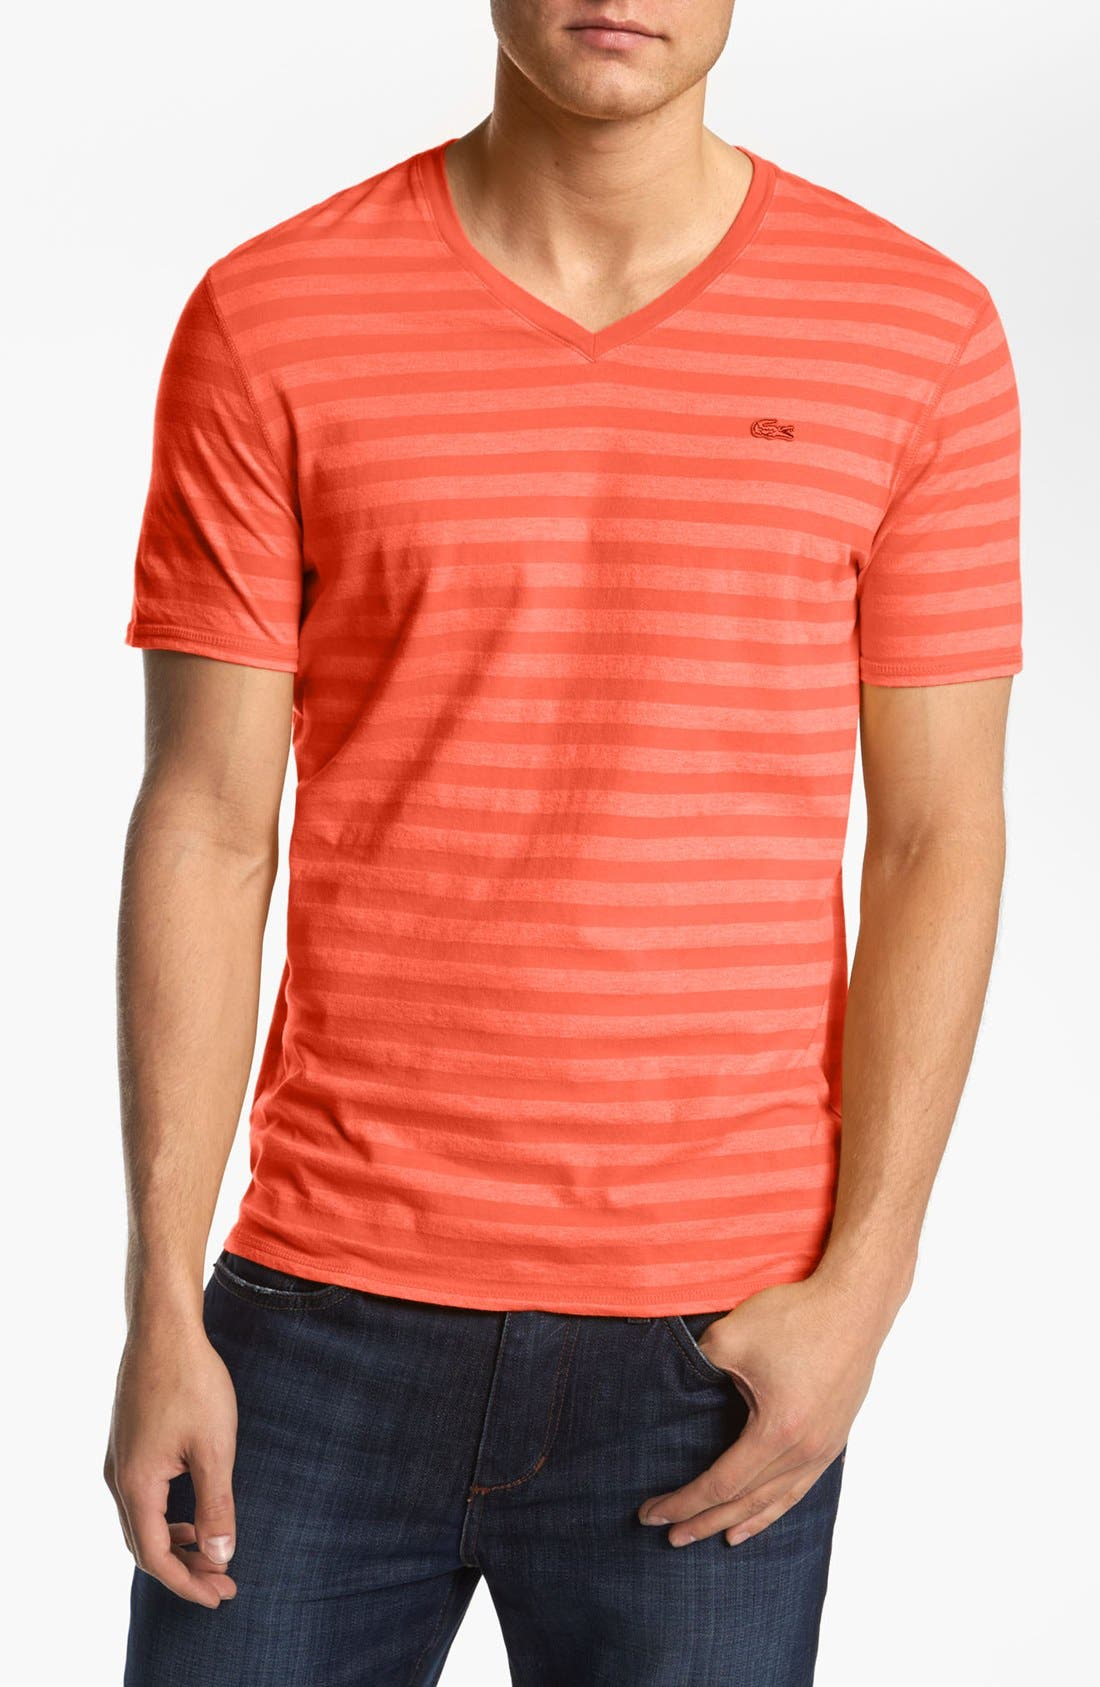 Main Image - Lacoste Stripe V-Neck T-Shirt